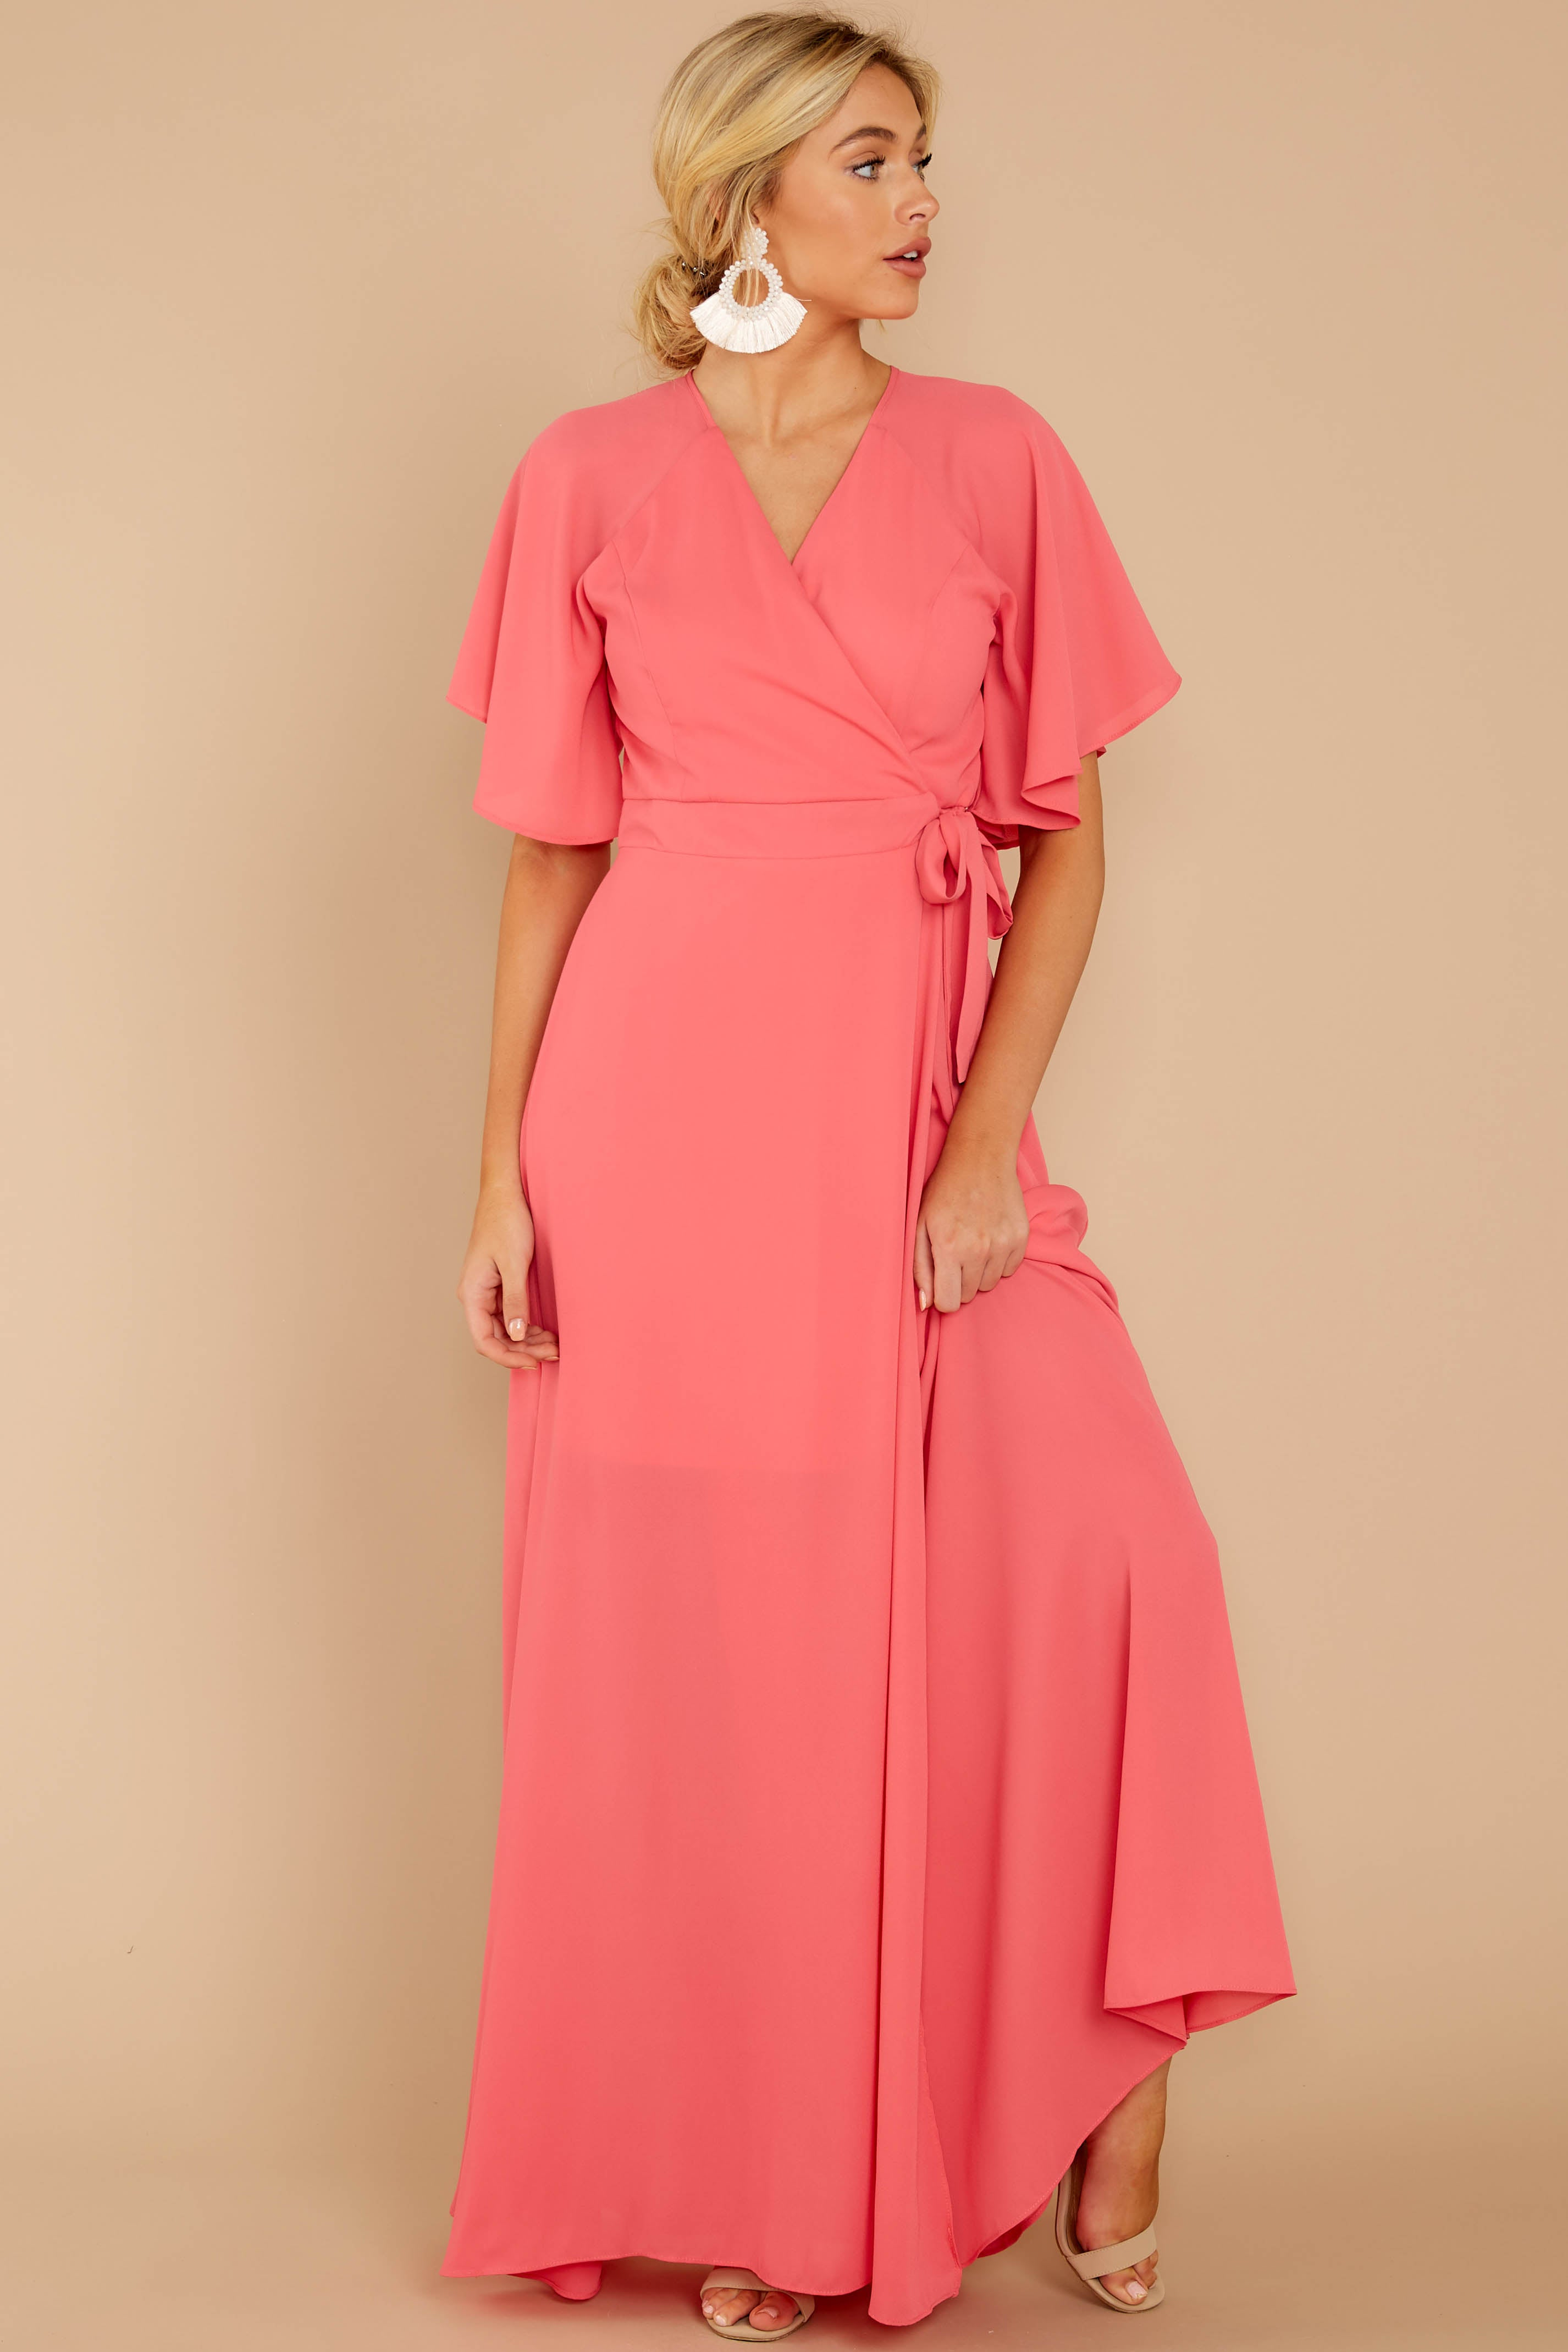 2 Wrapped In Elegance Flamingo Pink Maxi Dress at reddress.com